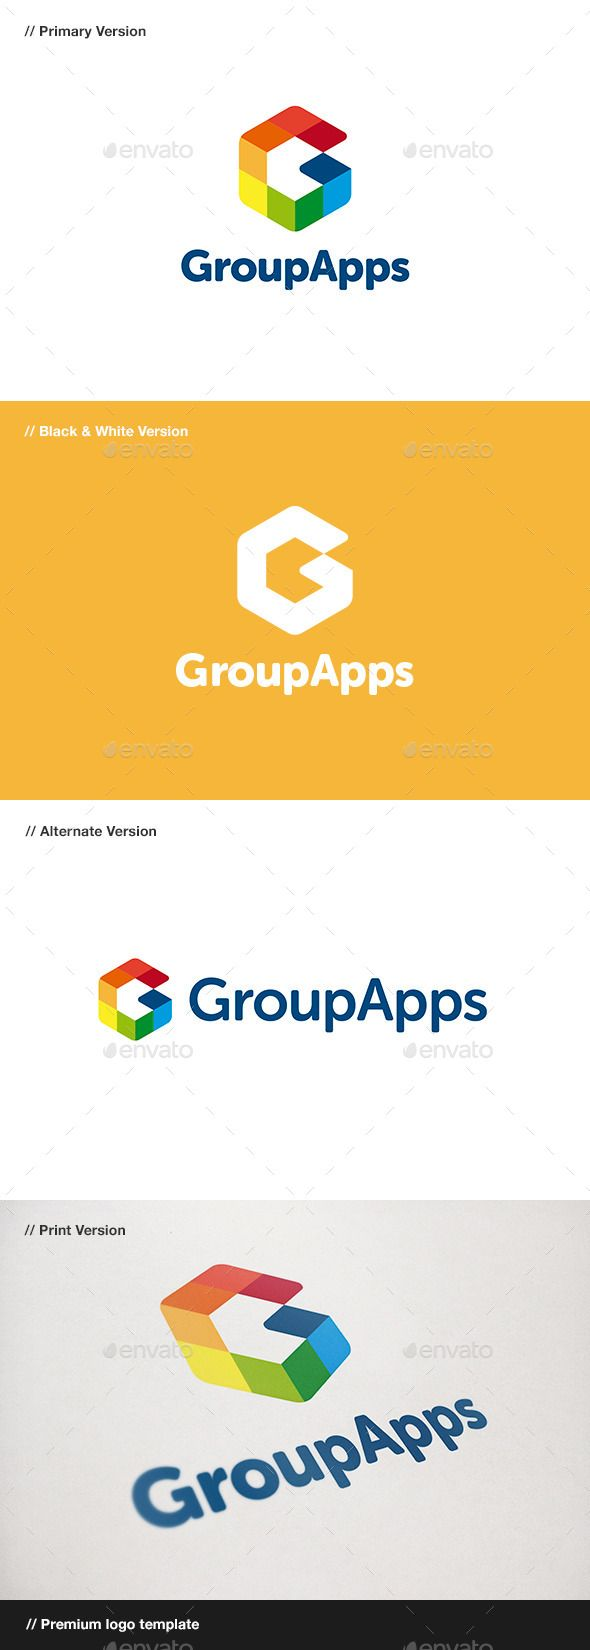 Group Apps Letter G - Logo Design Template Vector #logotype Download it here: http://graphicriver.net/item/group-apps-letter-g-logo/10934835?s_rank=809?ref=nesto